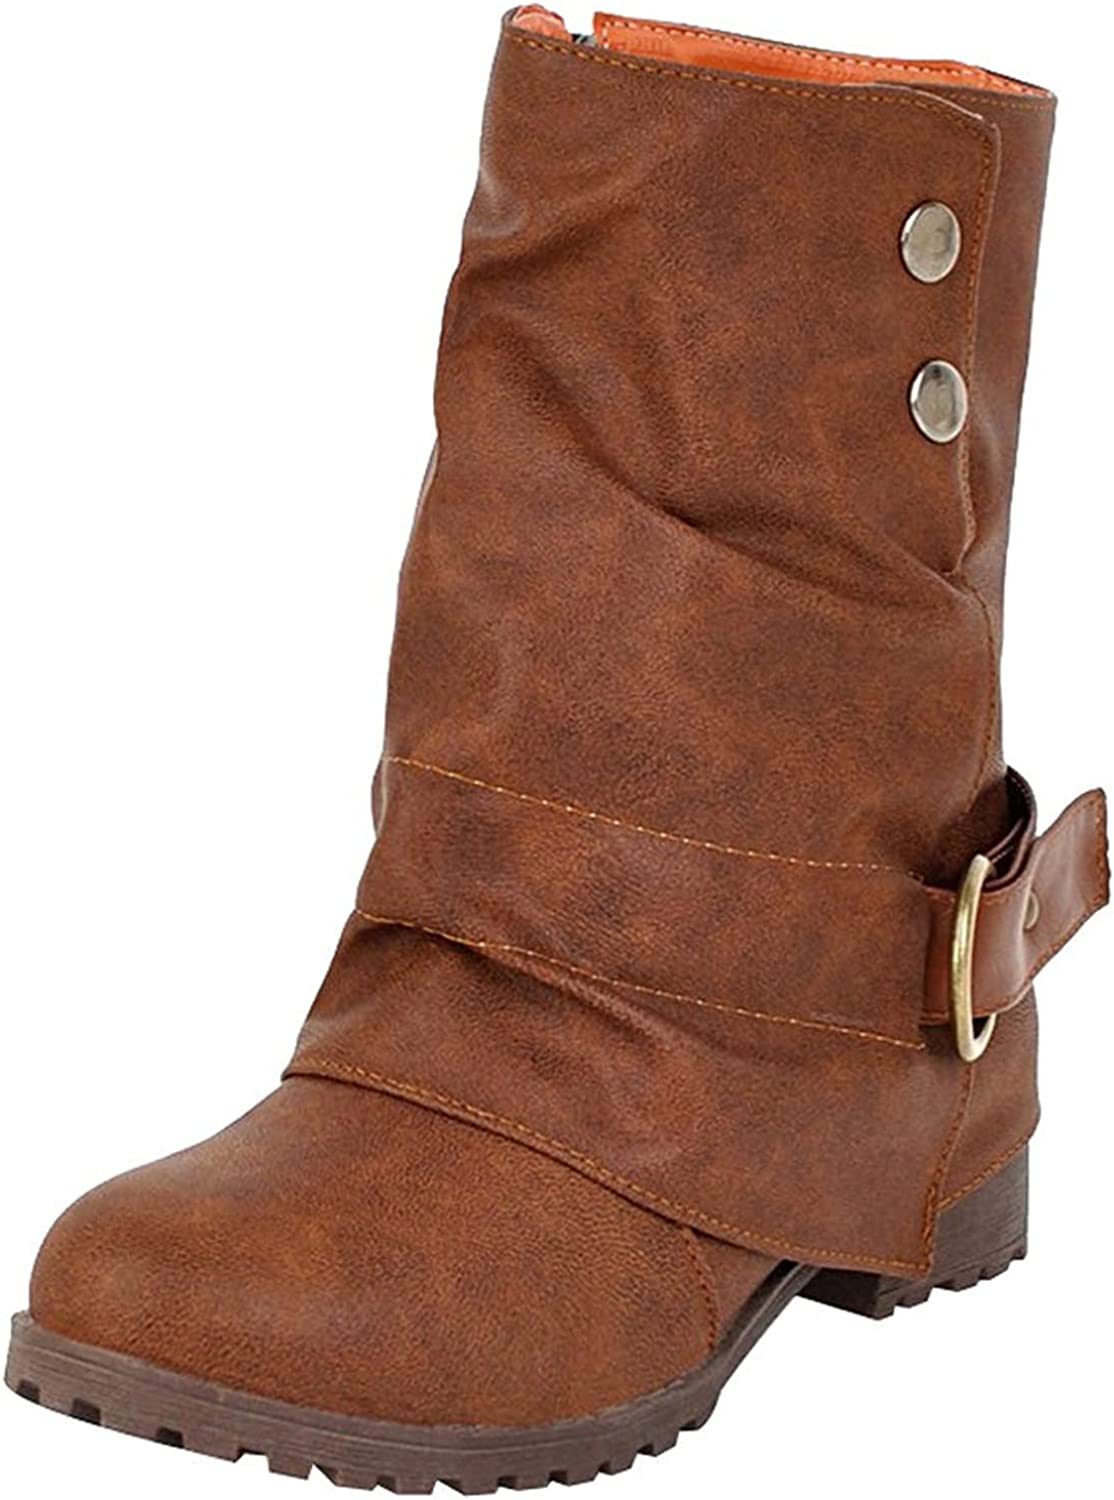 Women Retro Buckle Ankle Booties Mid Calf Combat Boots Round Toe